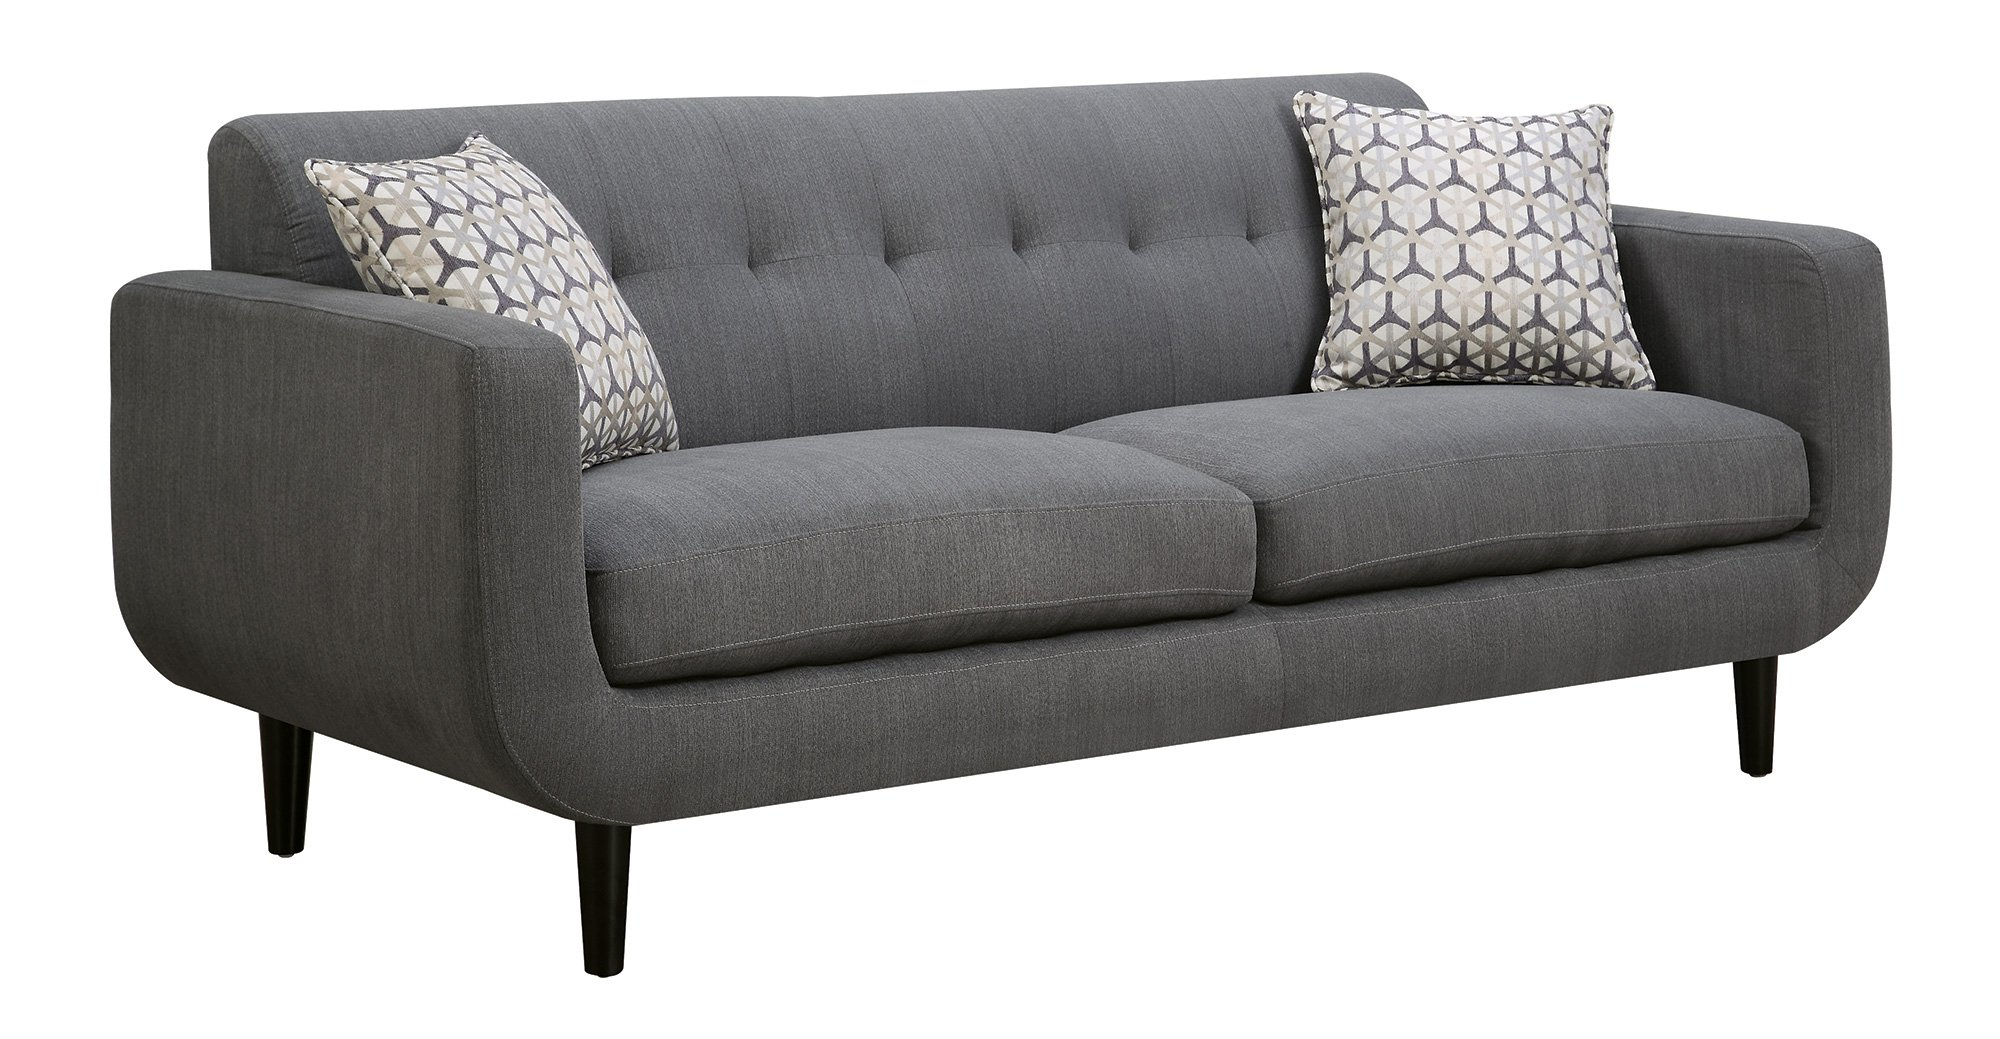 Coaster Home Furnishings Coaster 505201 Sofa, Grey, Stansall Collection